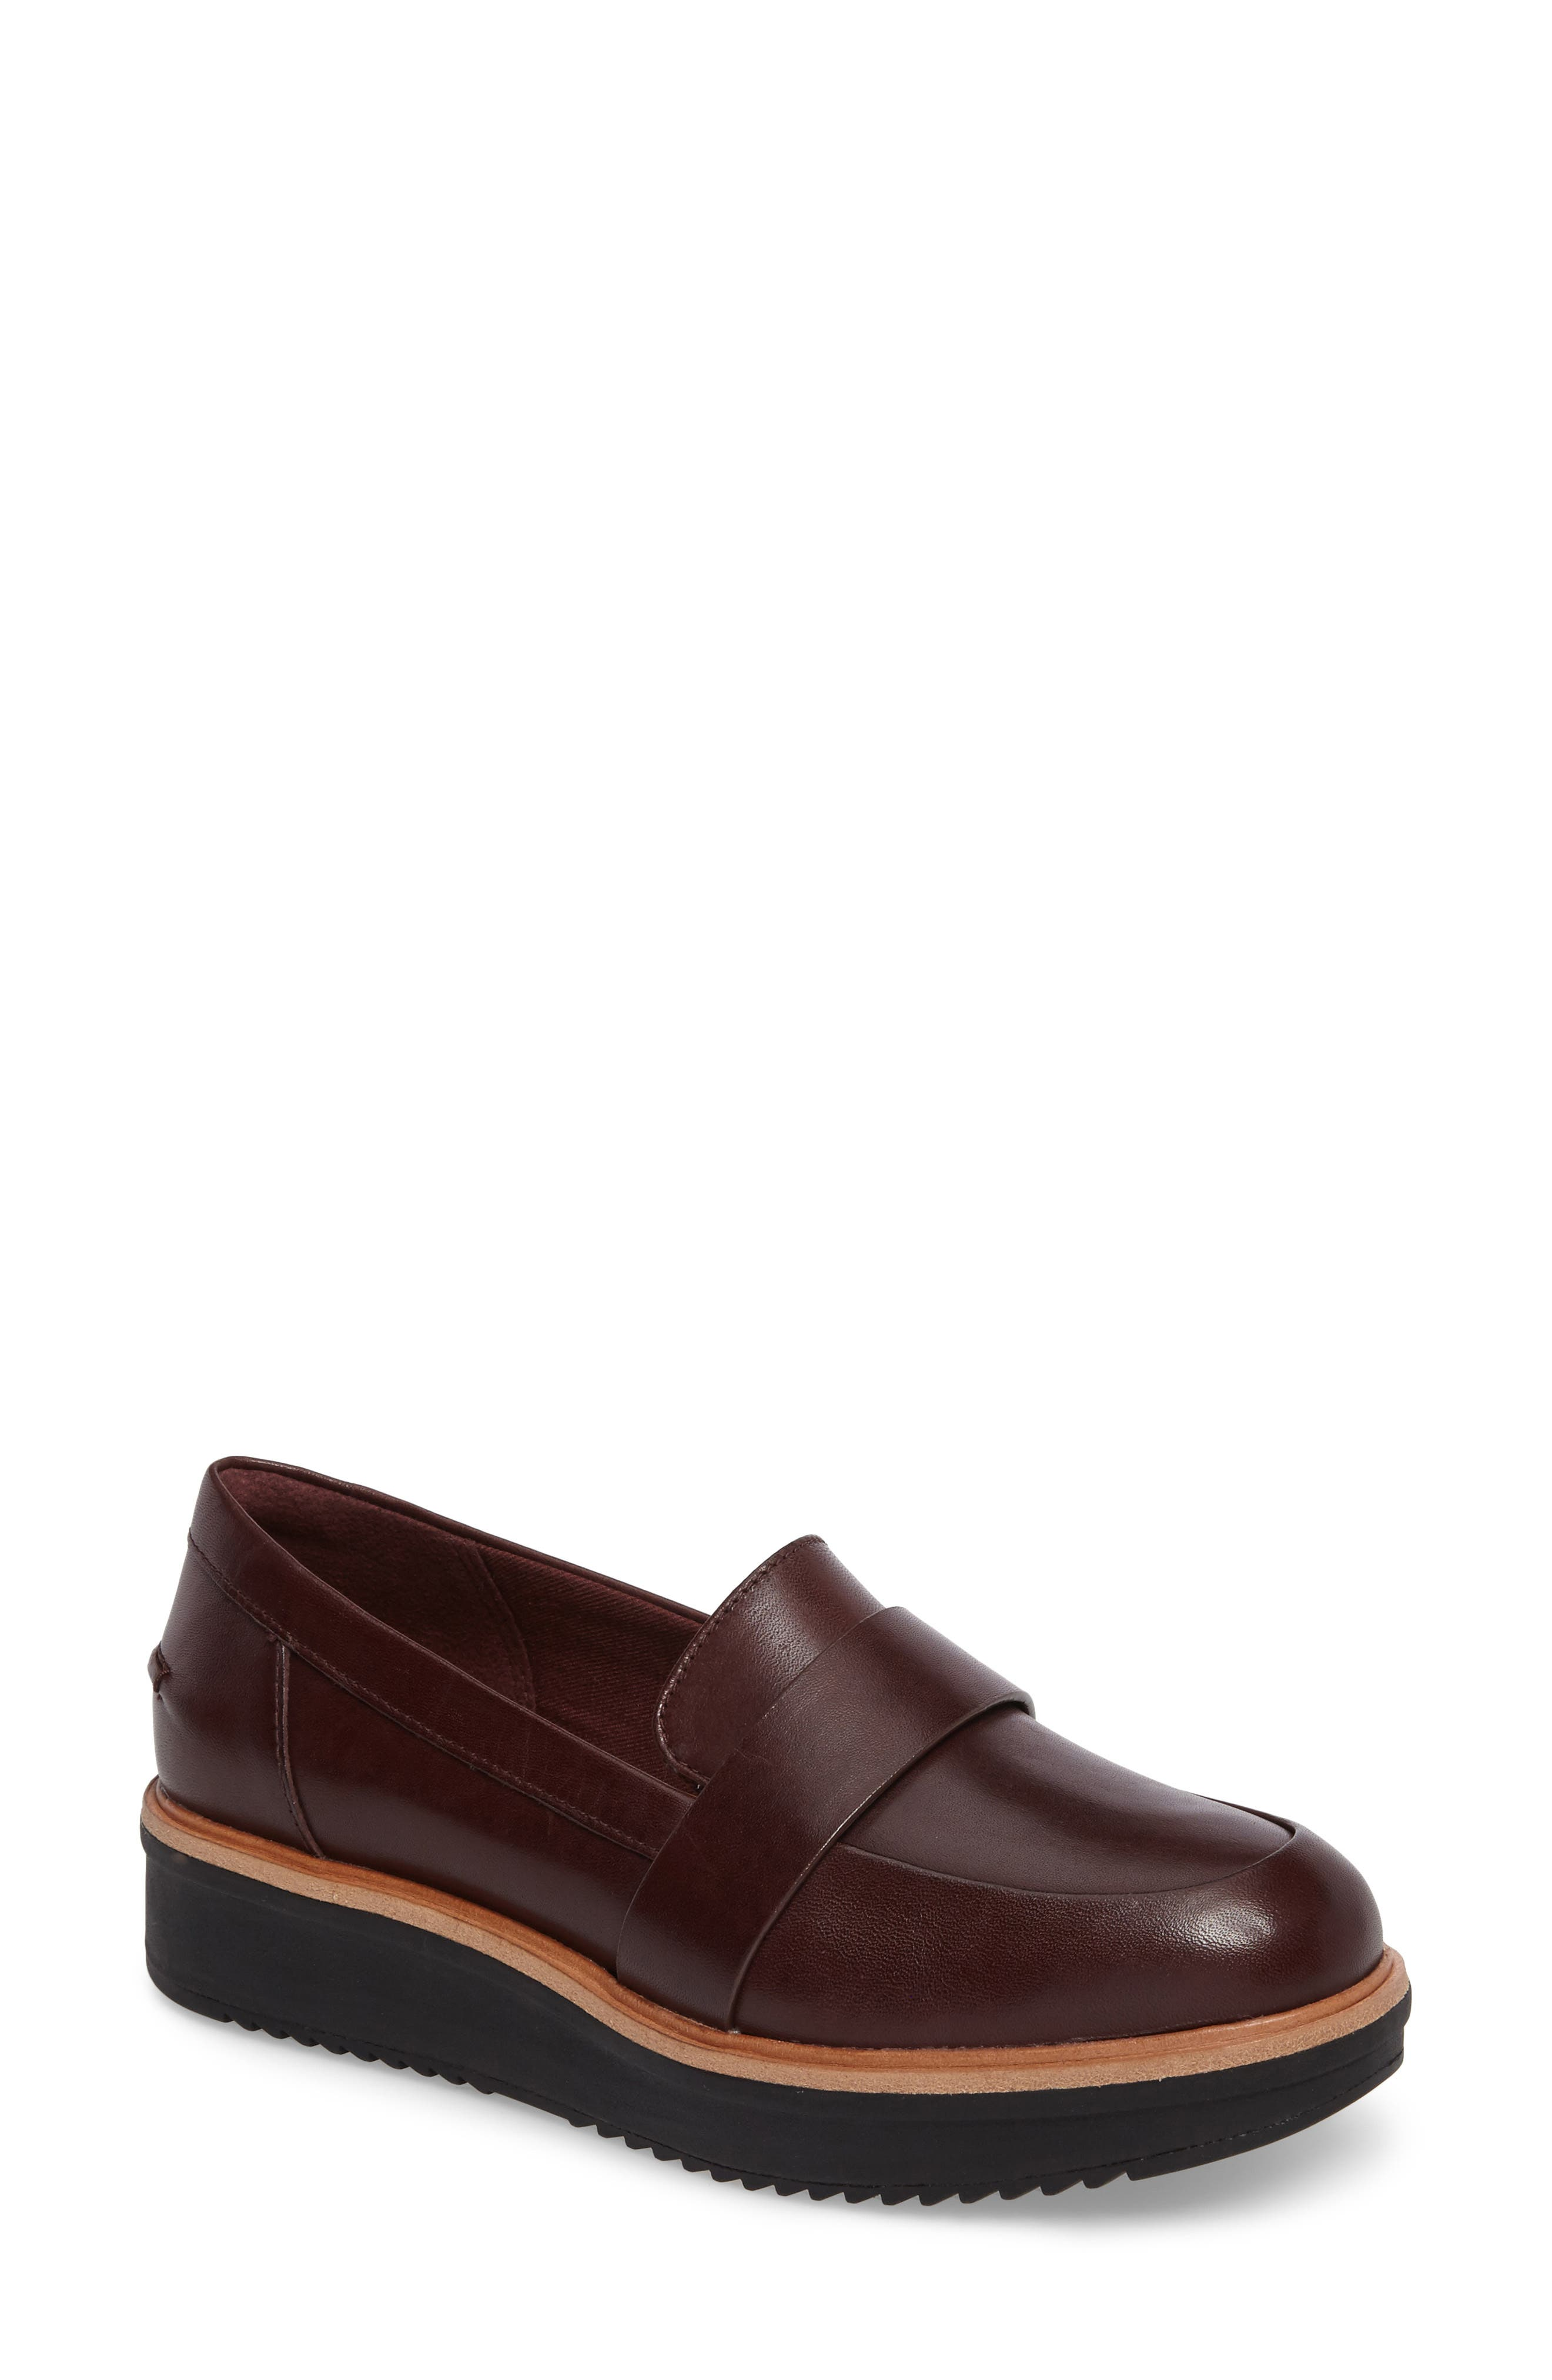 CLARKS<SUP>®</SUP>, Teadale Elsa Loafer, Main thumbnail 1, color, BURGUNDY LEATHER